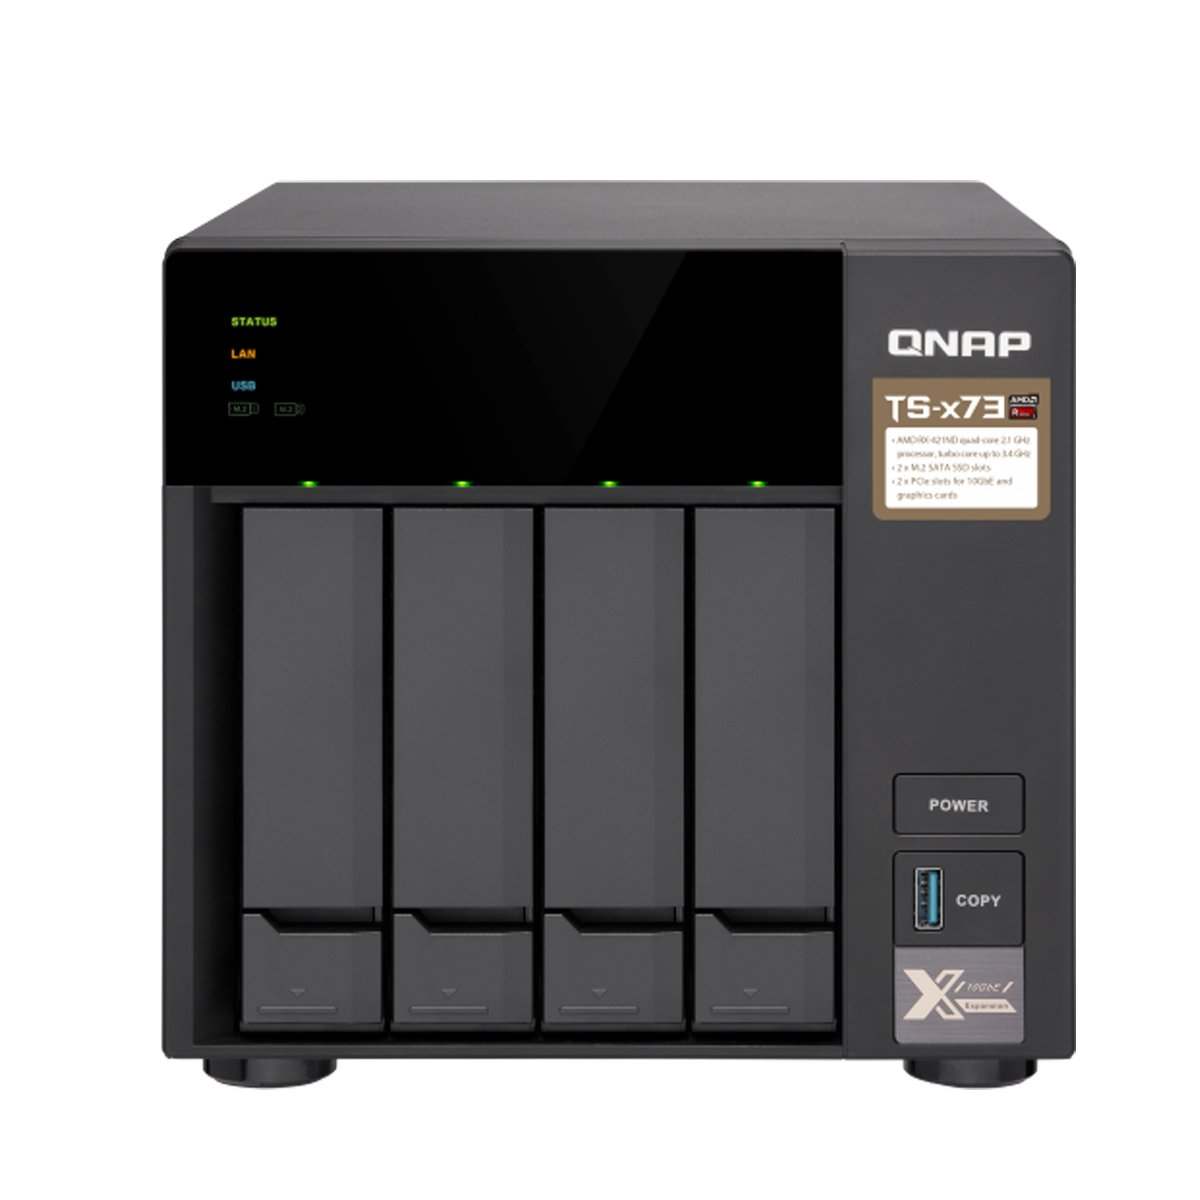 Qnap TS-873-8G-US 8-Bay NAS/iSCSI IP-SAN, AMD R Series Quad-core 2.1GHz, 8GB RAM, 10G-Ready